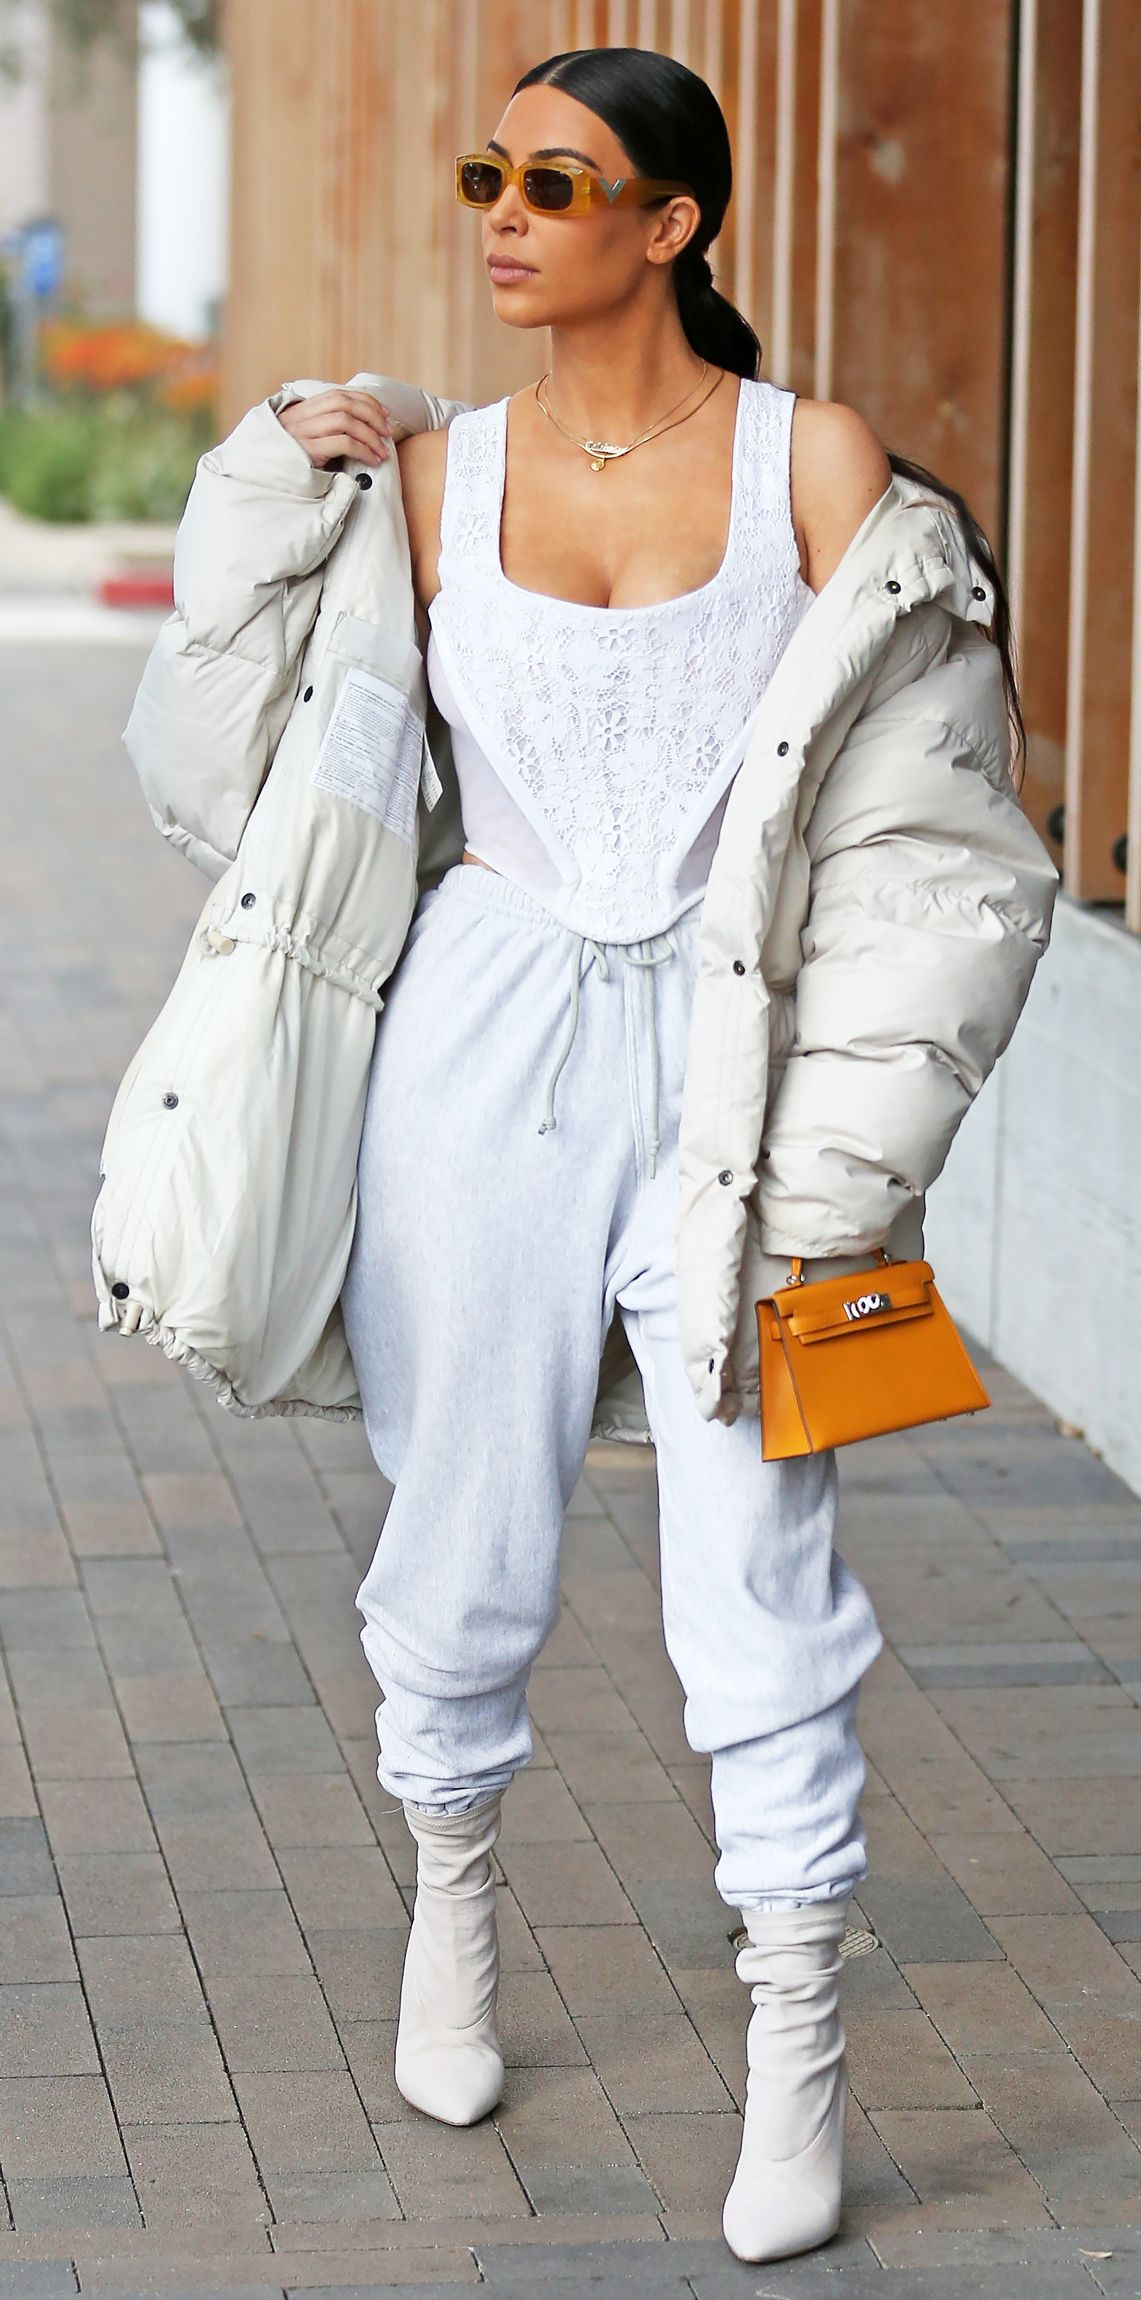 36d6c5b1923e69 Kardashian stepped out in L.A. in an all-white look